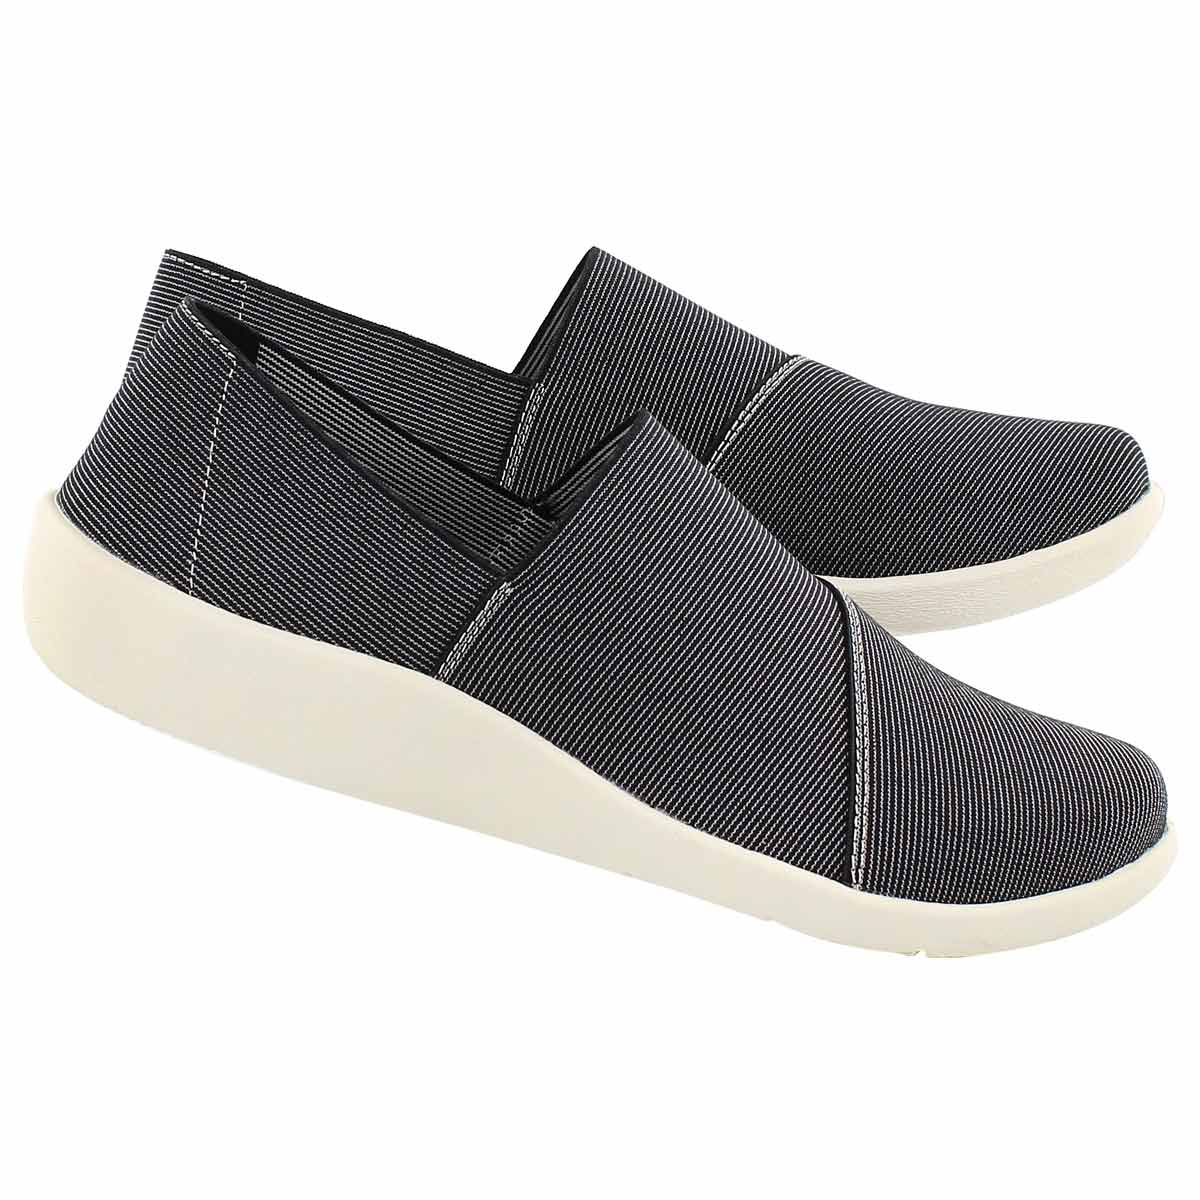 Lds Sillian Firn blk mlti casual slip on